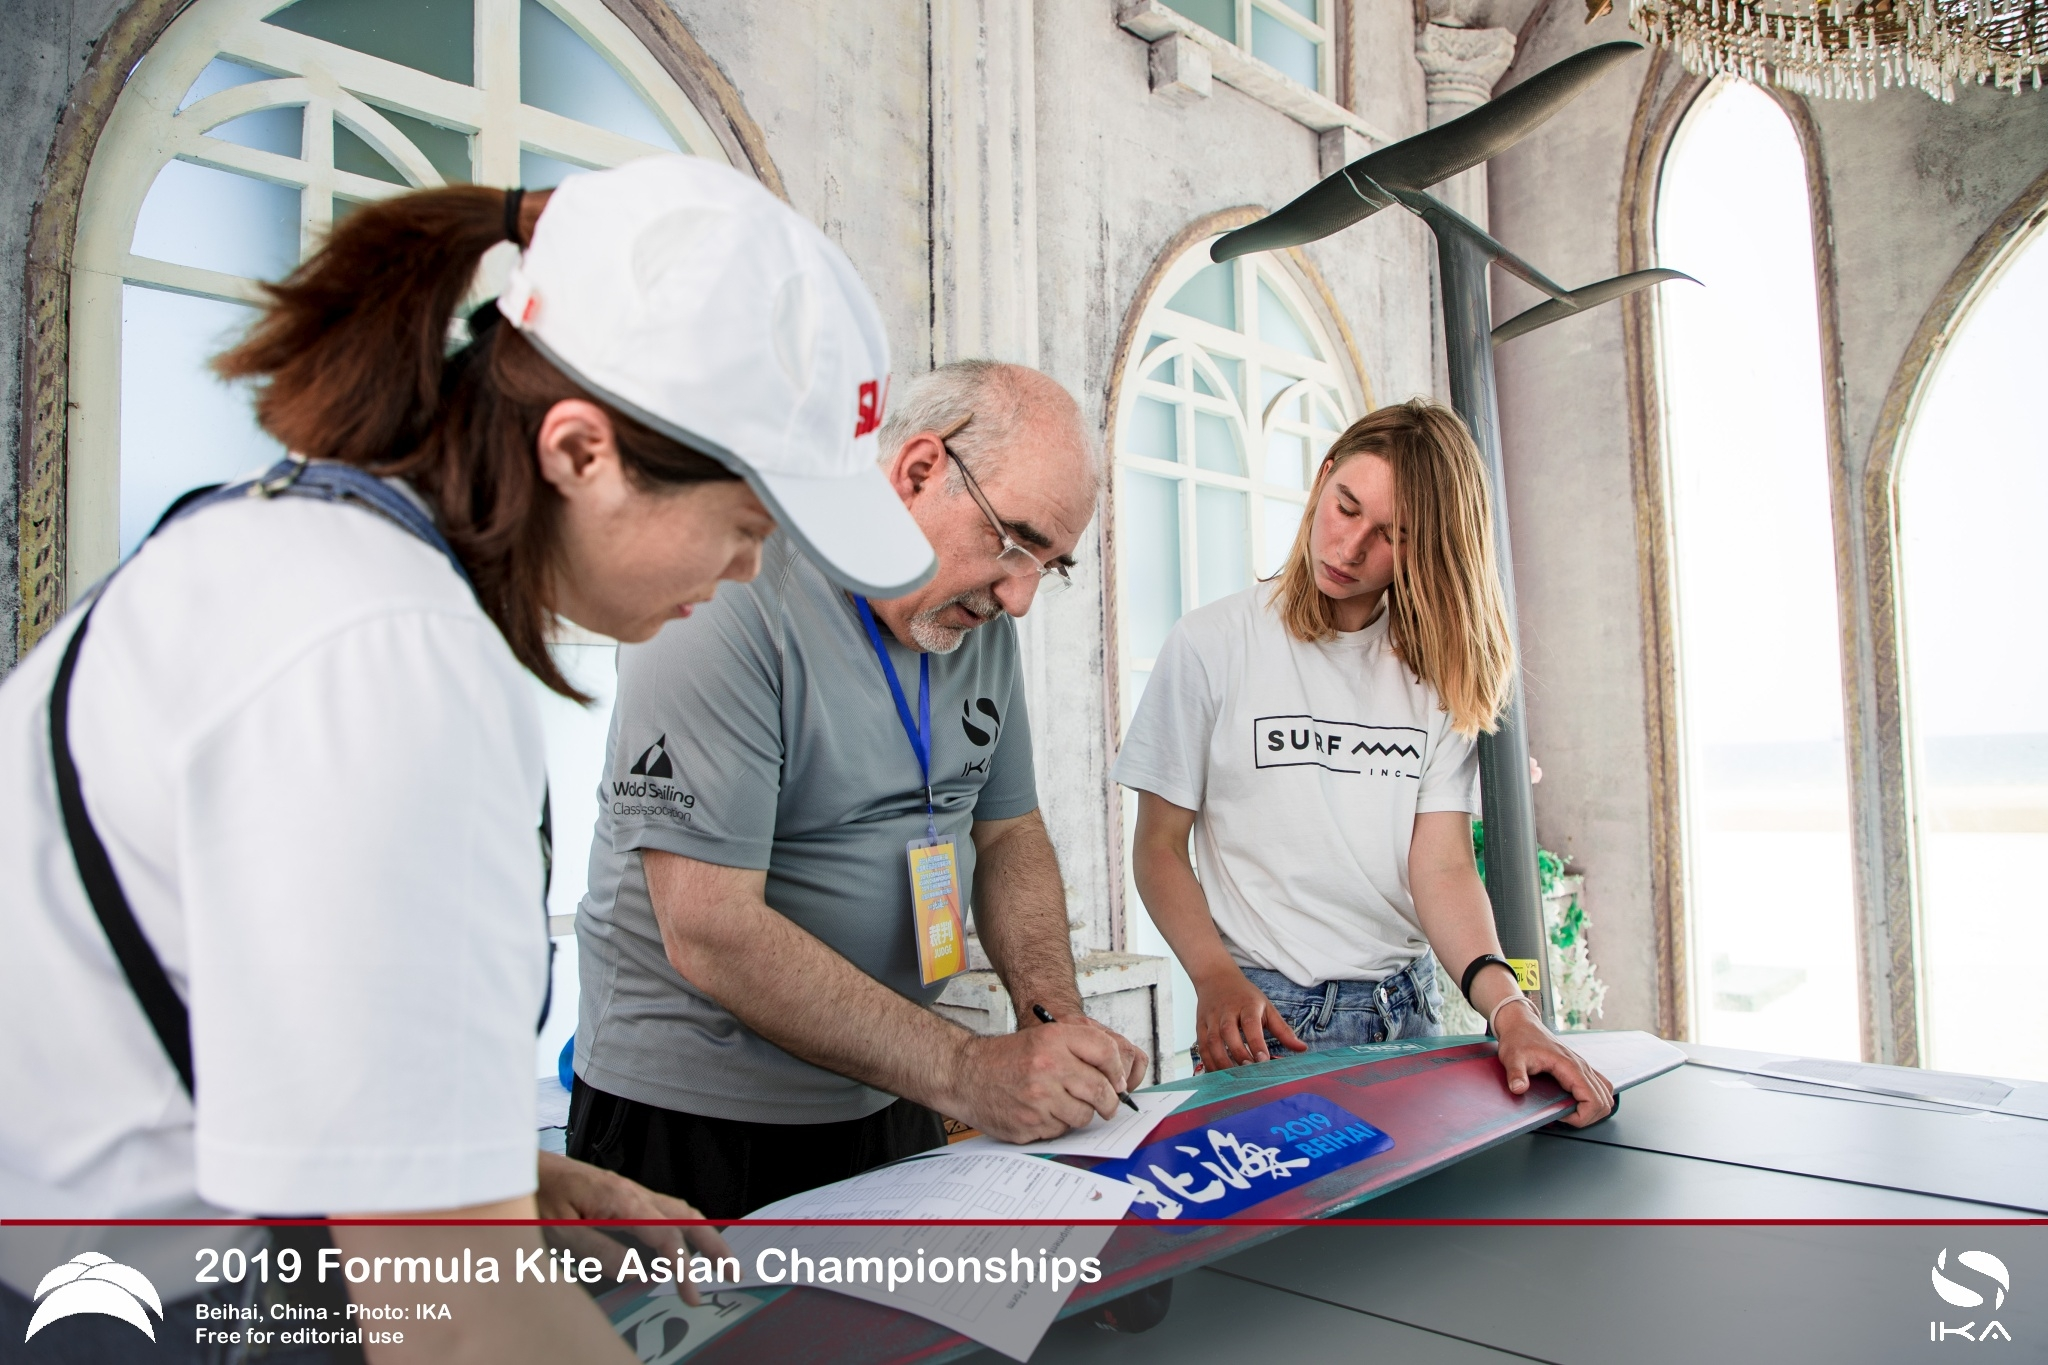 Formula Kite Equipment Registration for the Paris 2024 Olympic Quadrennium opens